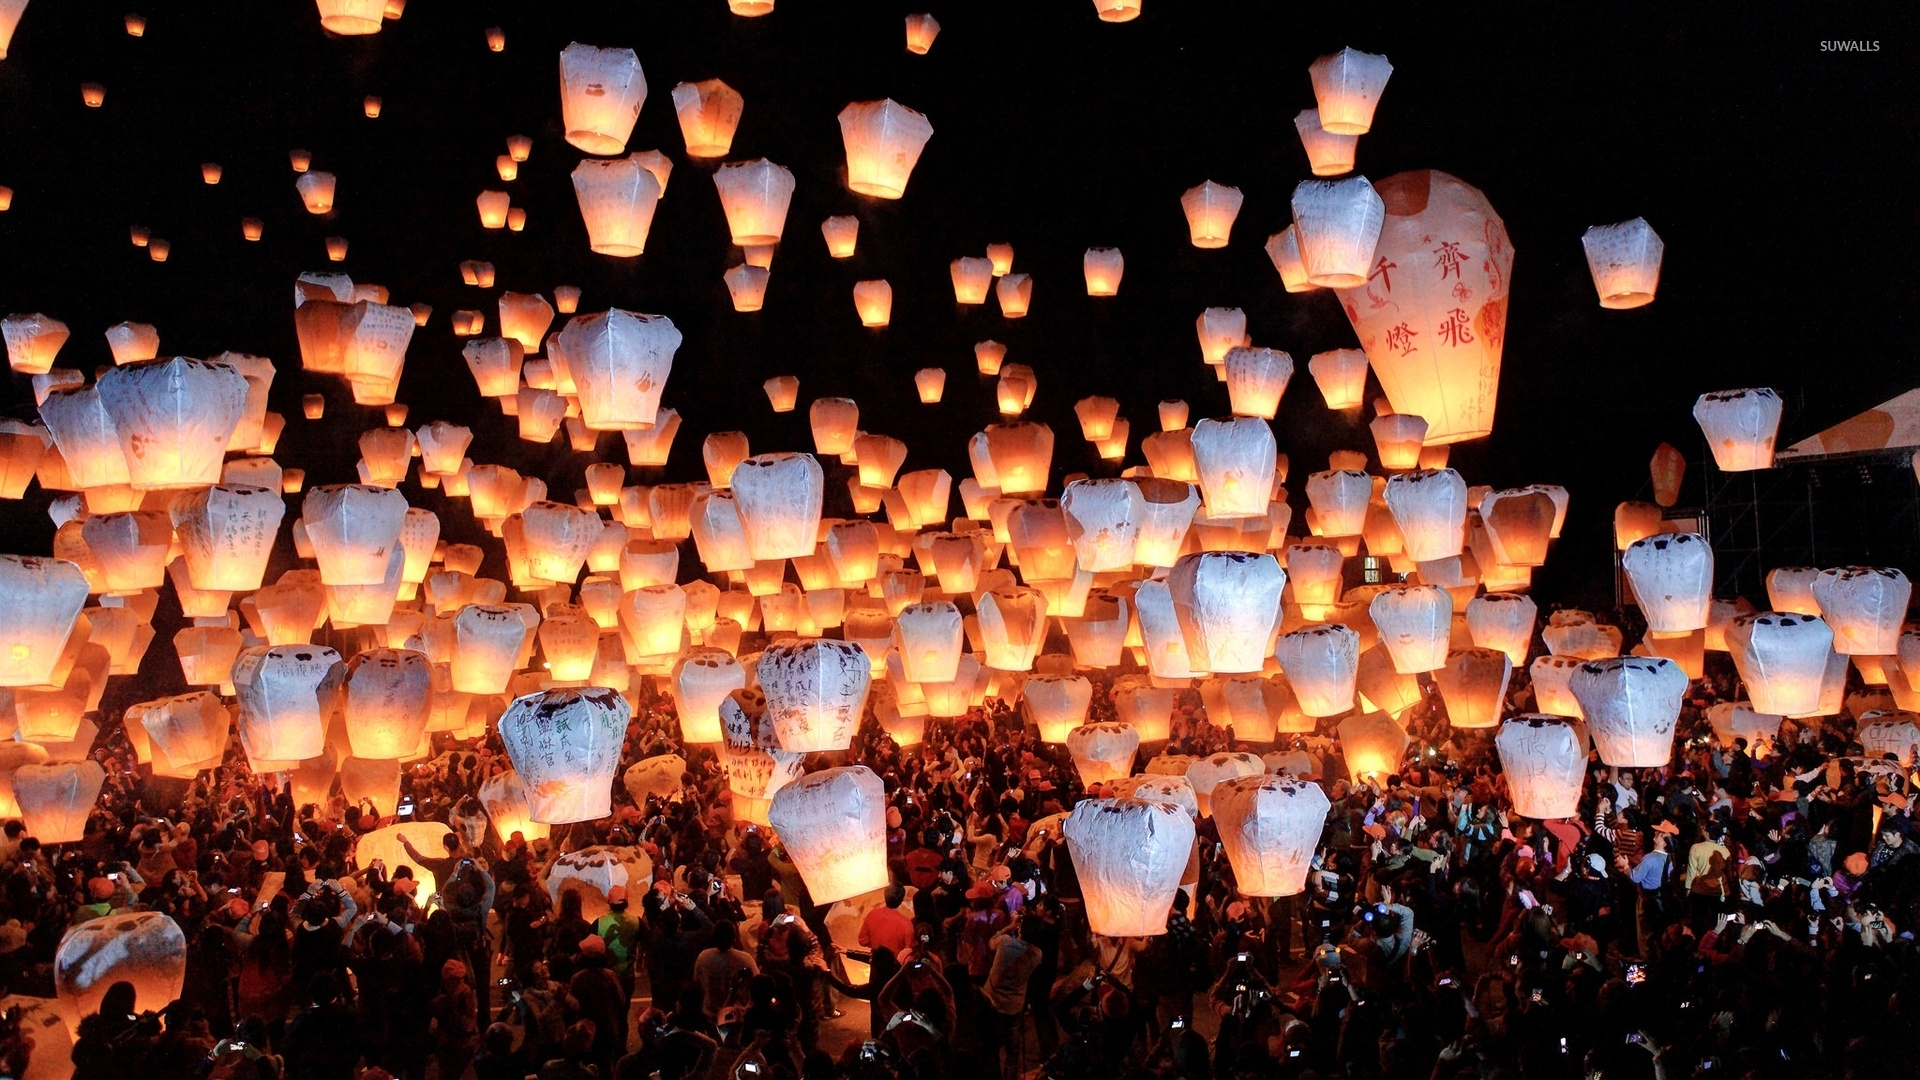 Sky lanterns wallpaper - Photography